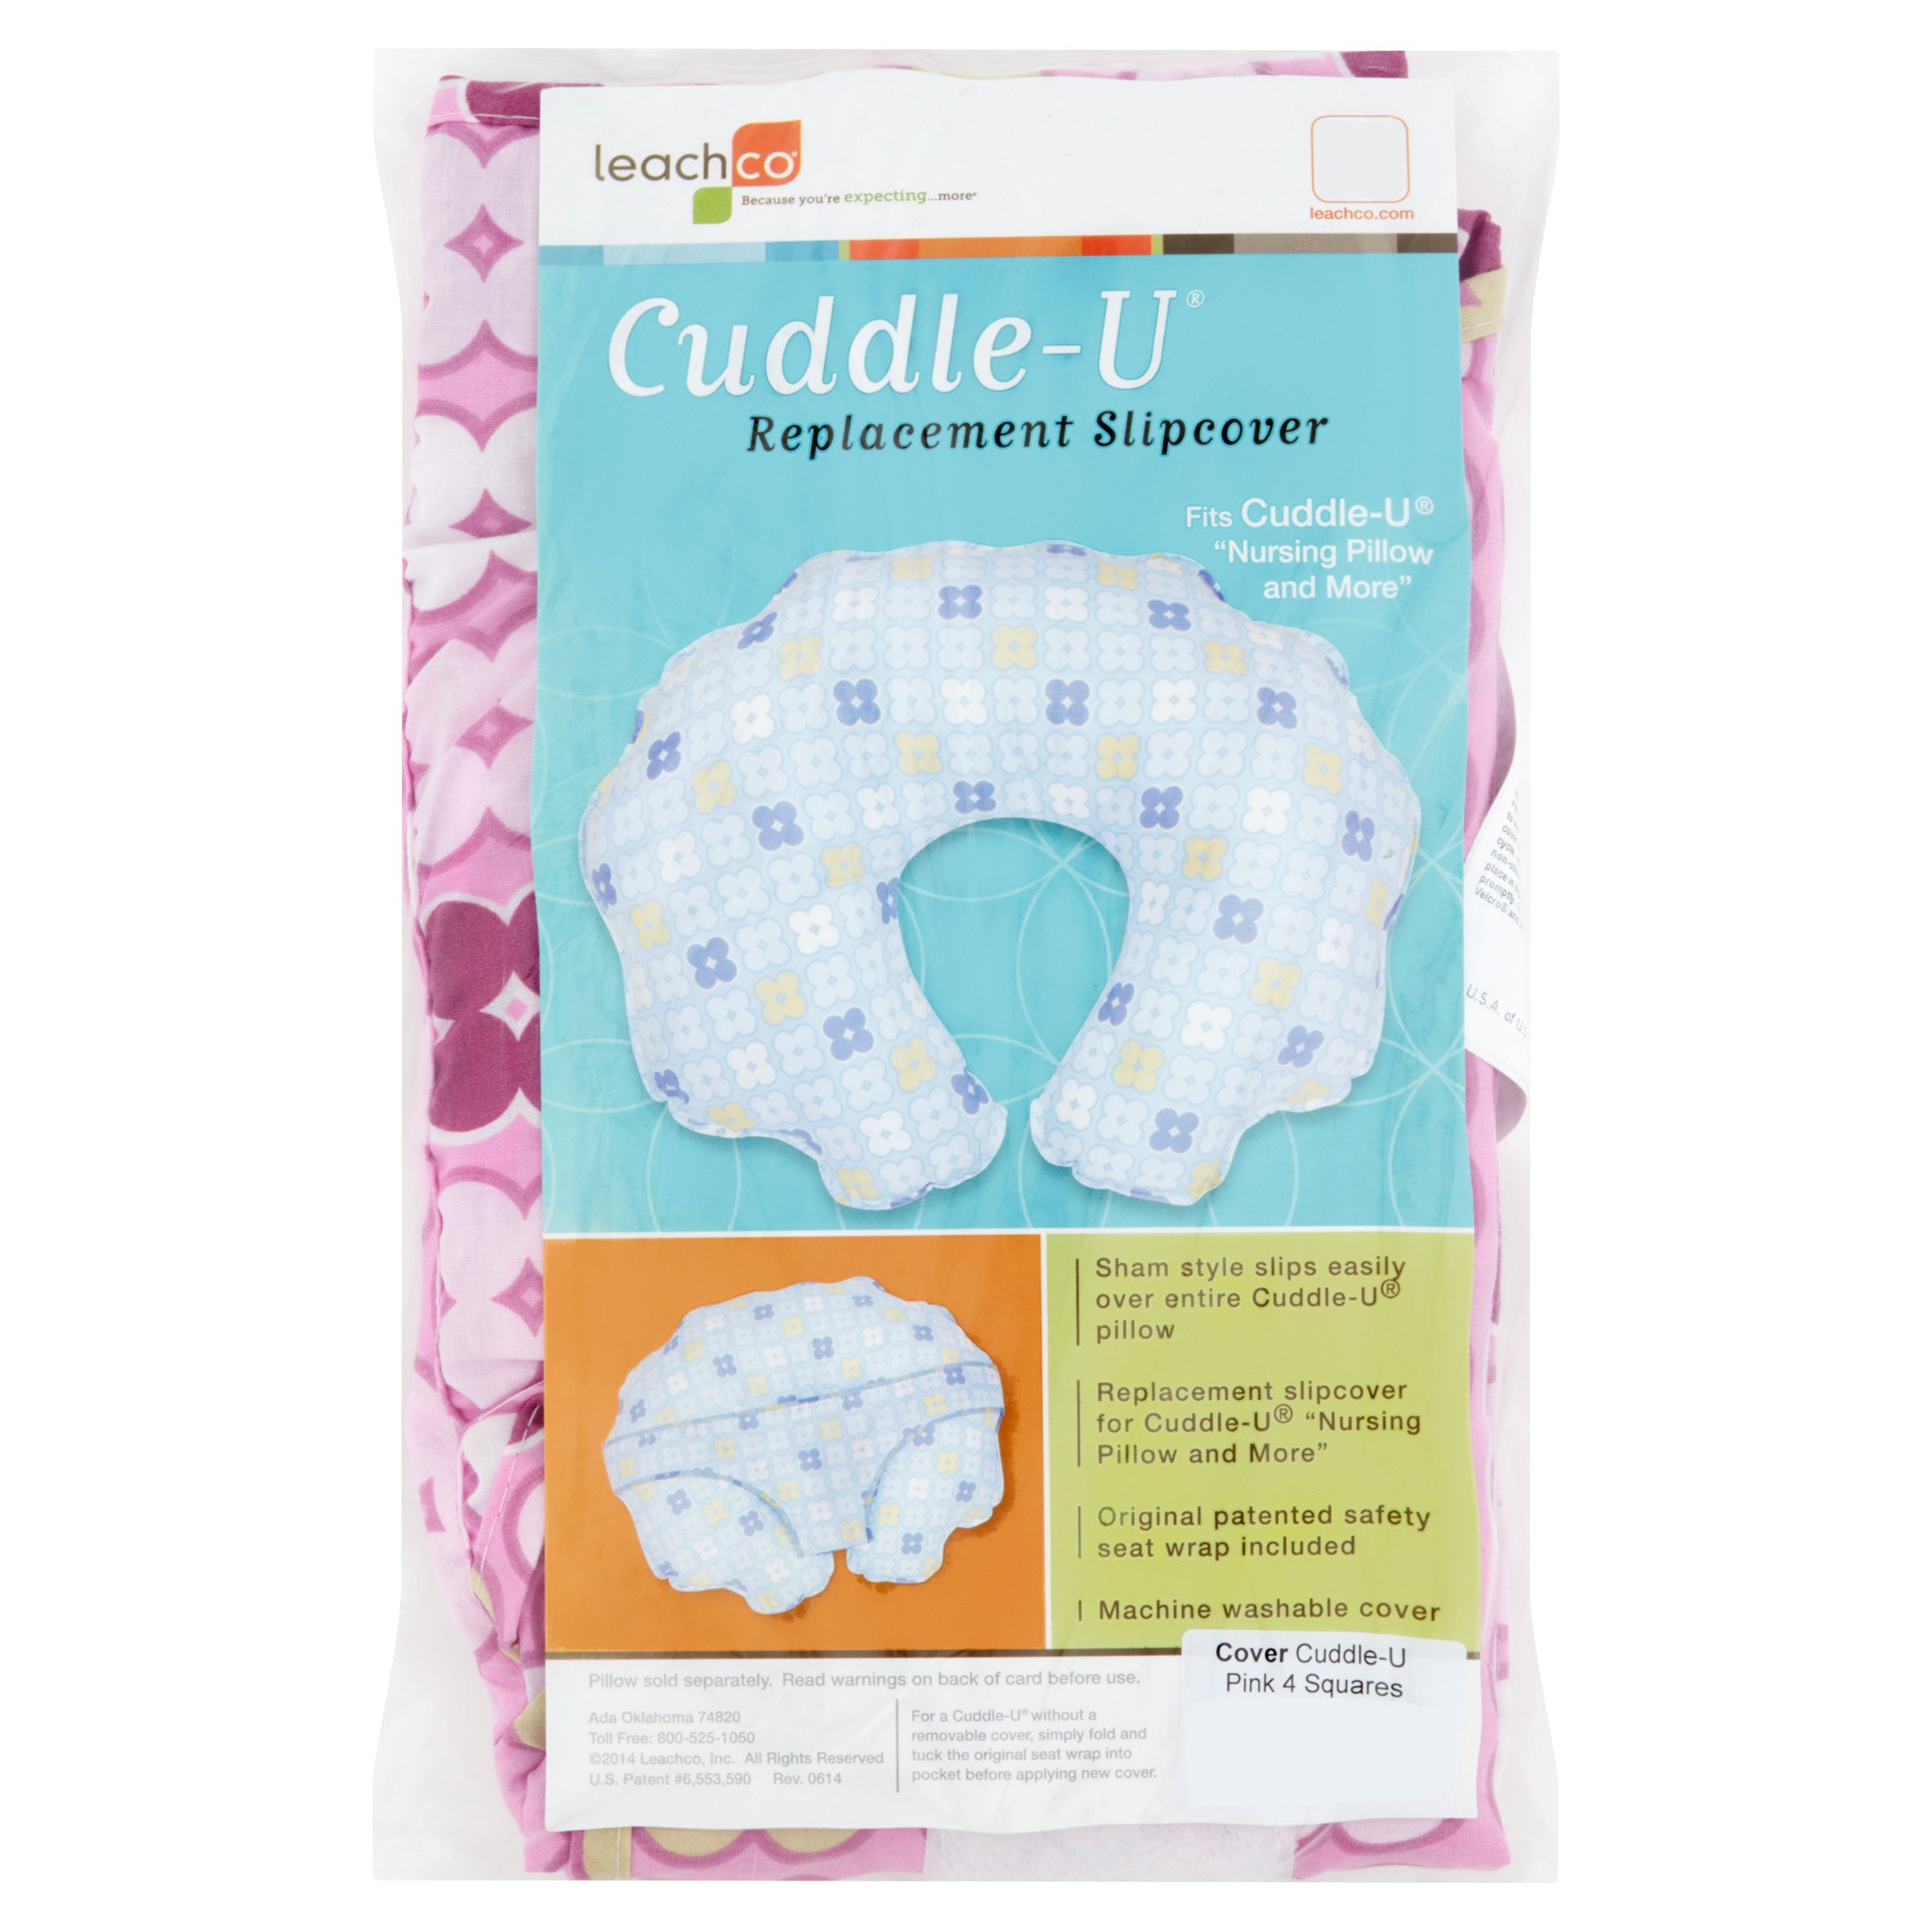 Leachco Cuddle-U Nursing Pillow Replacement Slipcover Pink 4 Squares